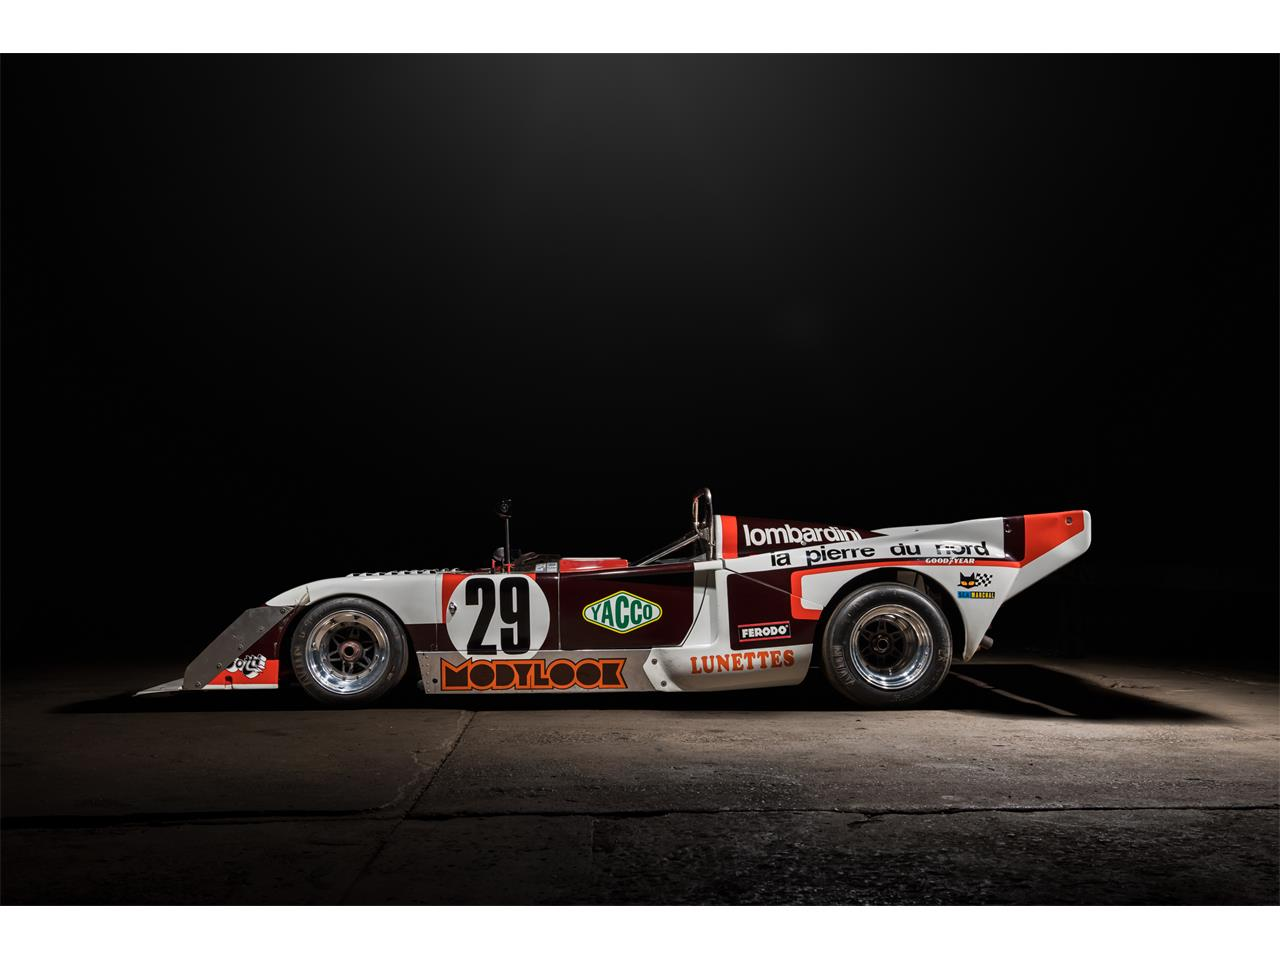 1978 Chevron B19 (CC-1215898) for sale in Philadelphia, Pennsylvania